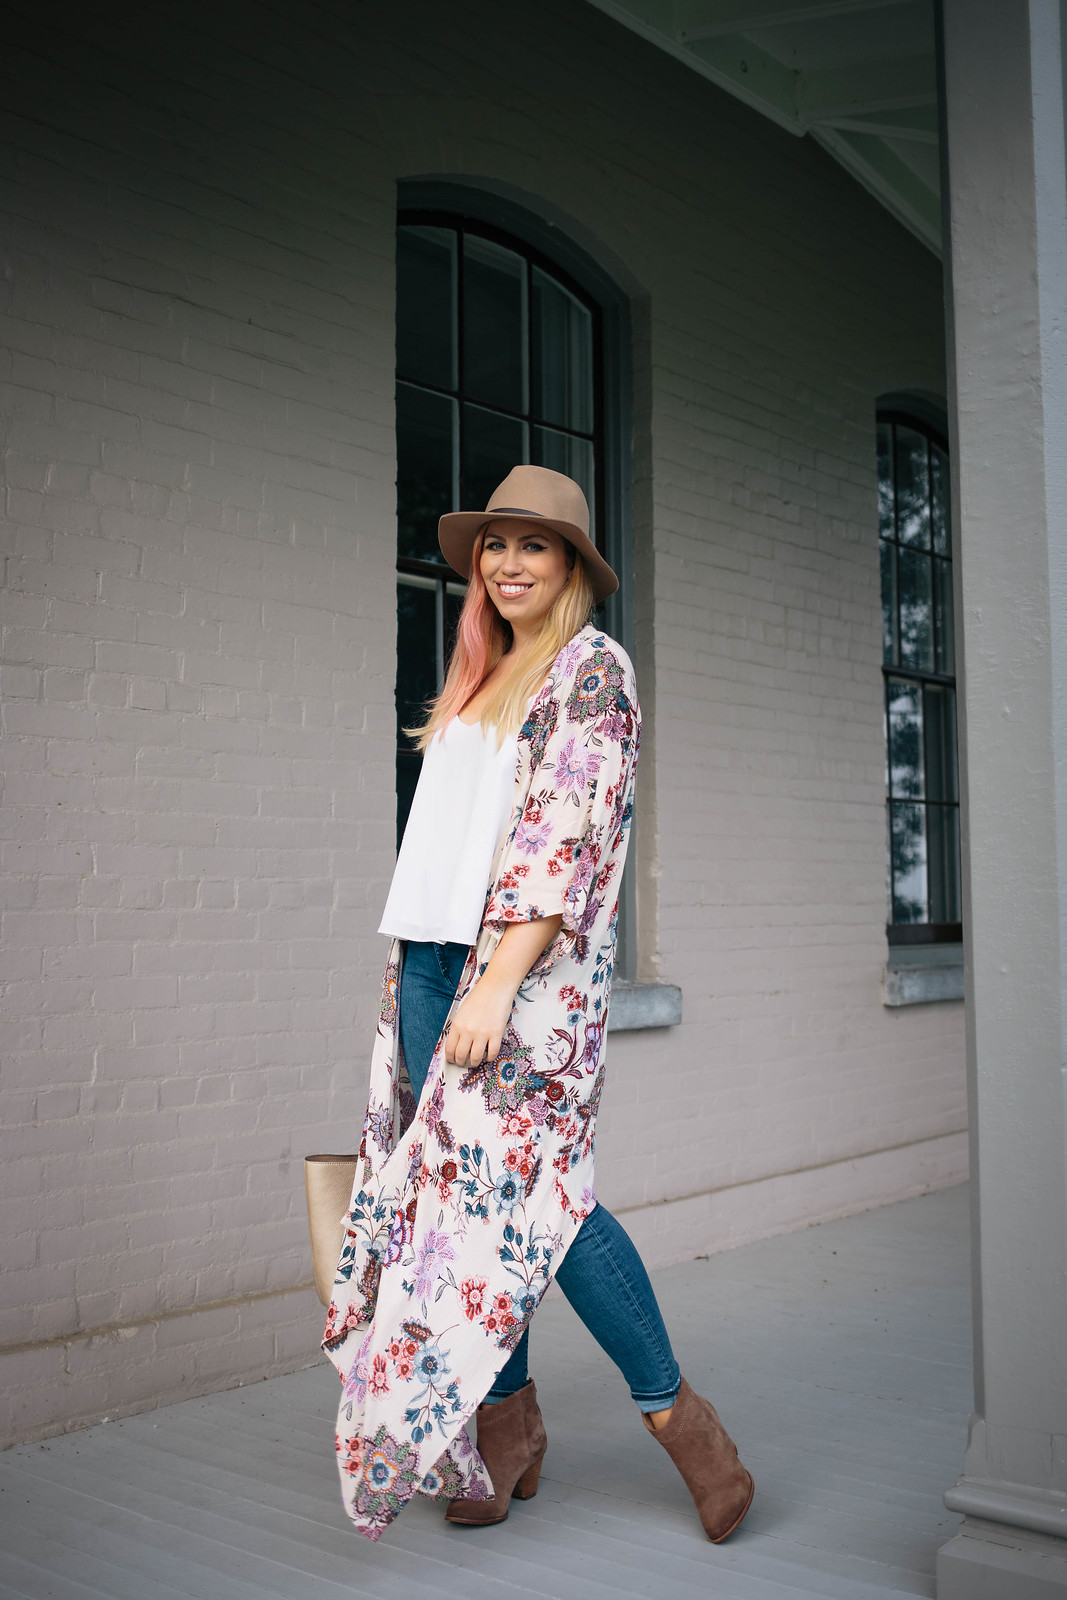 Long Vintage Floral Kimono Skinny Jeans Tan Suede Booties Fall Outfit Fashion Jackie Giardina